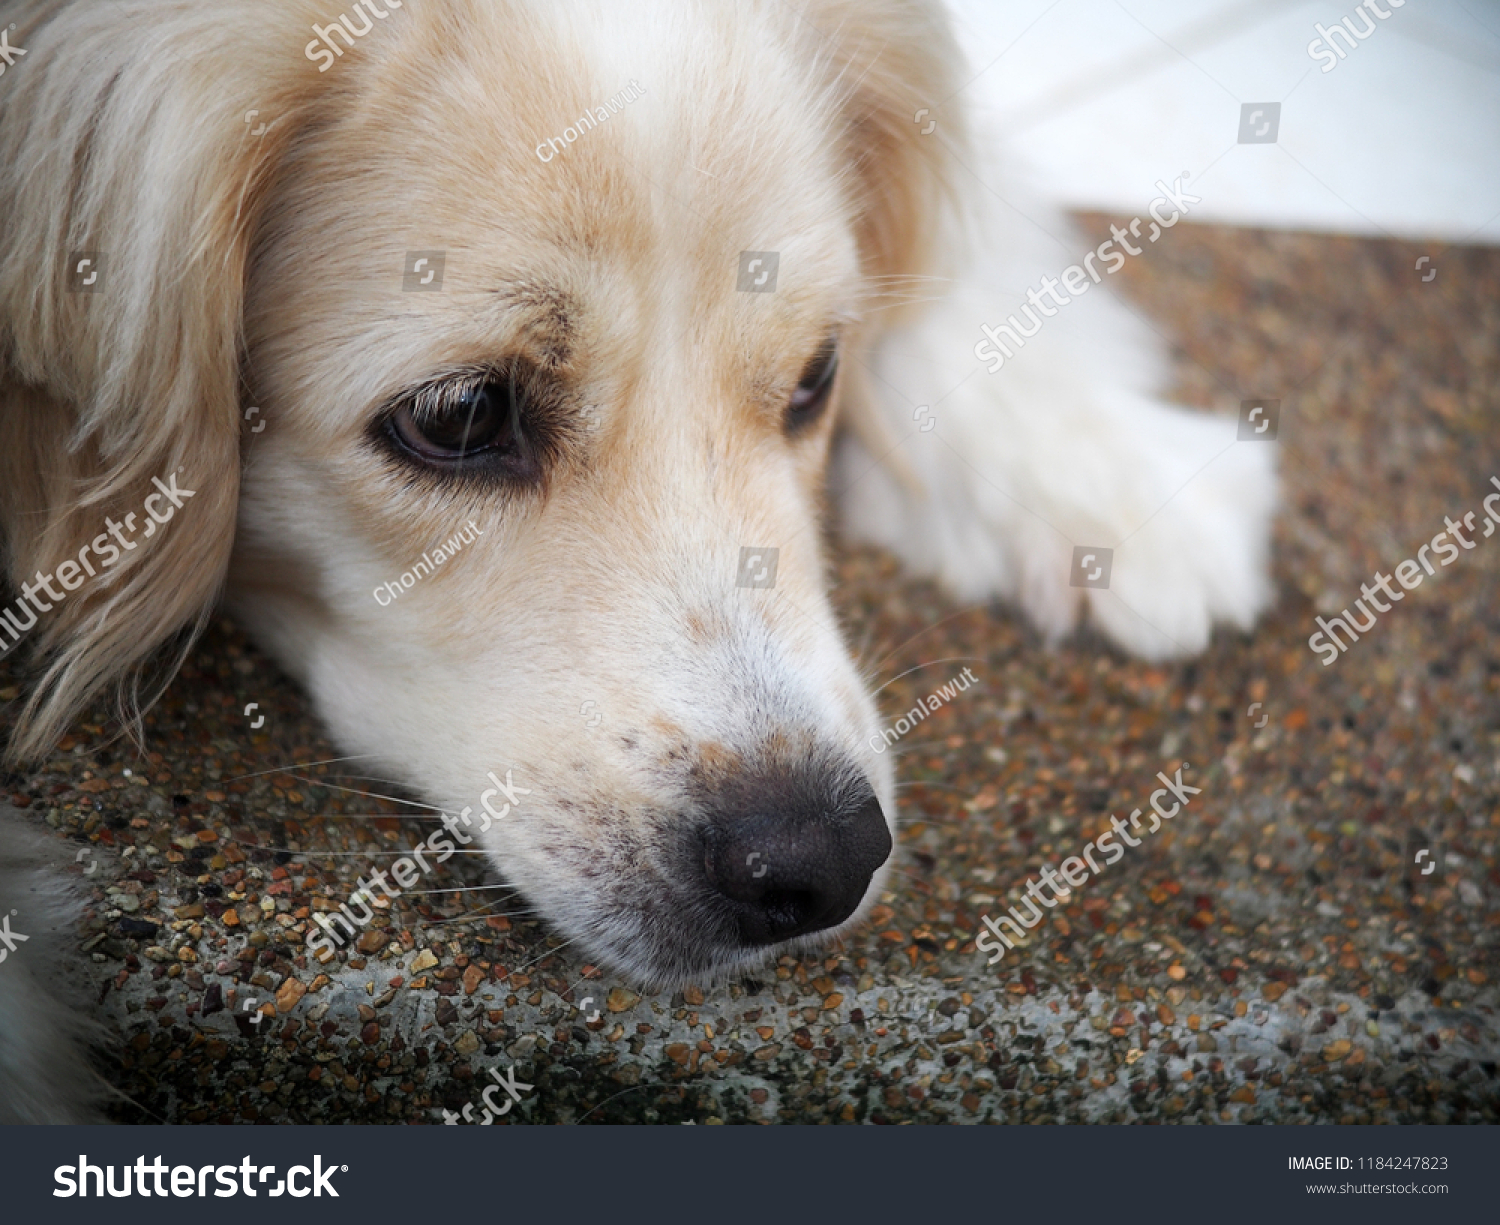 Lonesome lonely sad white cute fat long hair crossbred handsome dog portraits looks like golden retriever